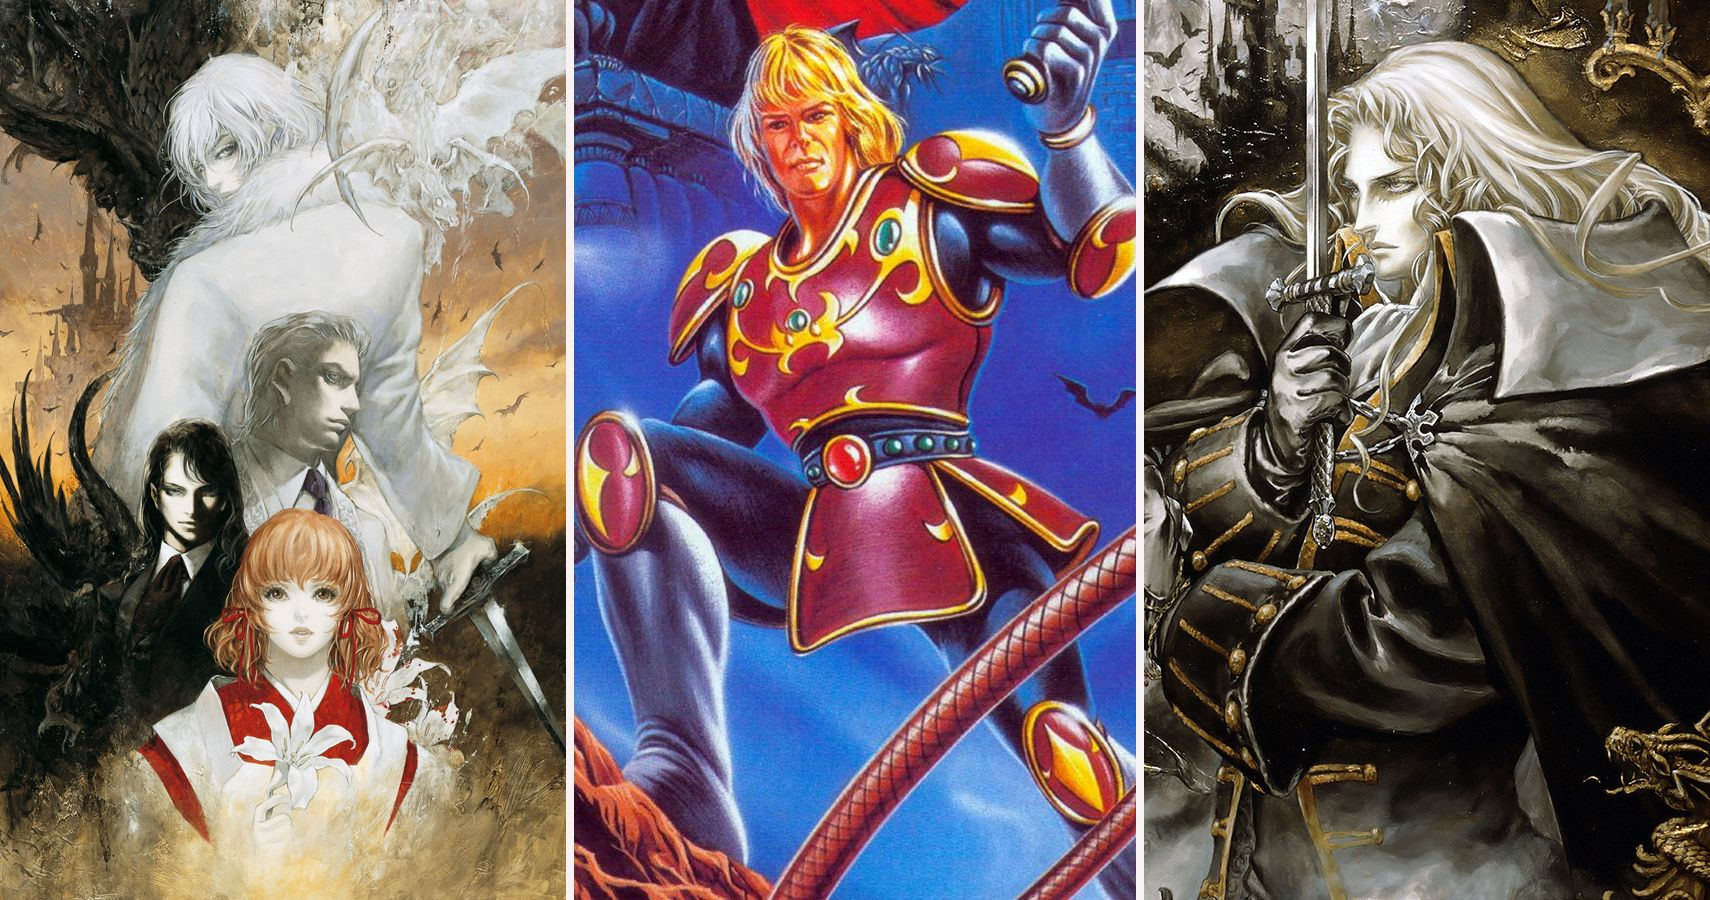 Ranking Every Castlevania Game From Worst To Best | TheGamer